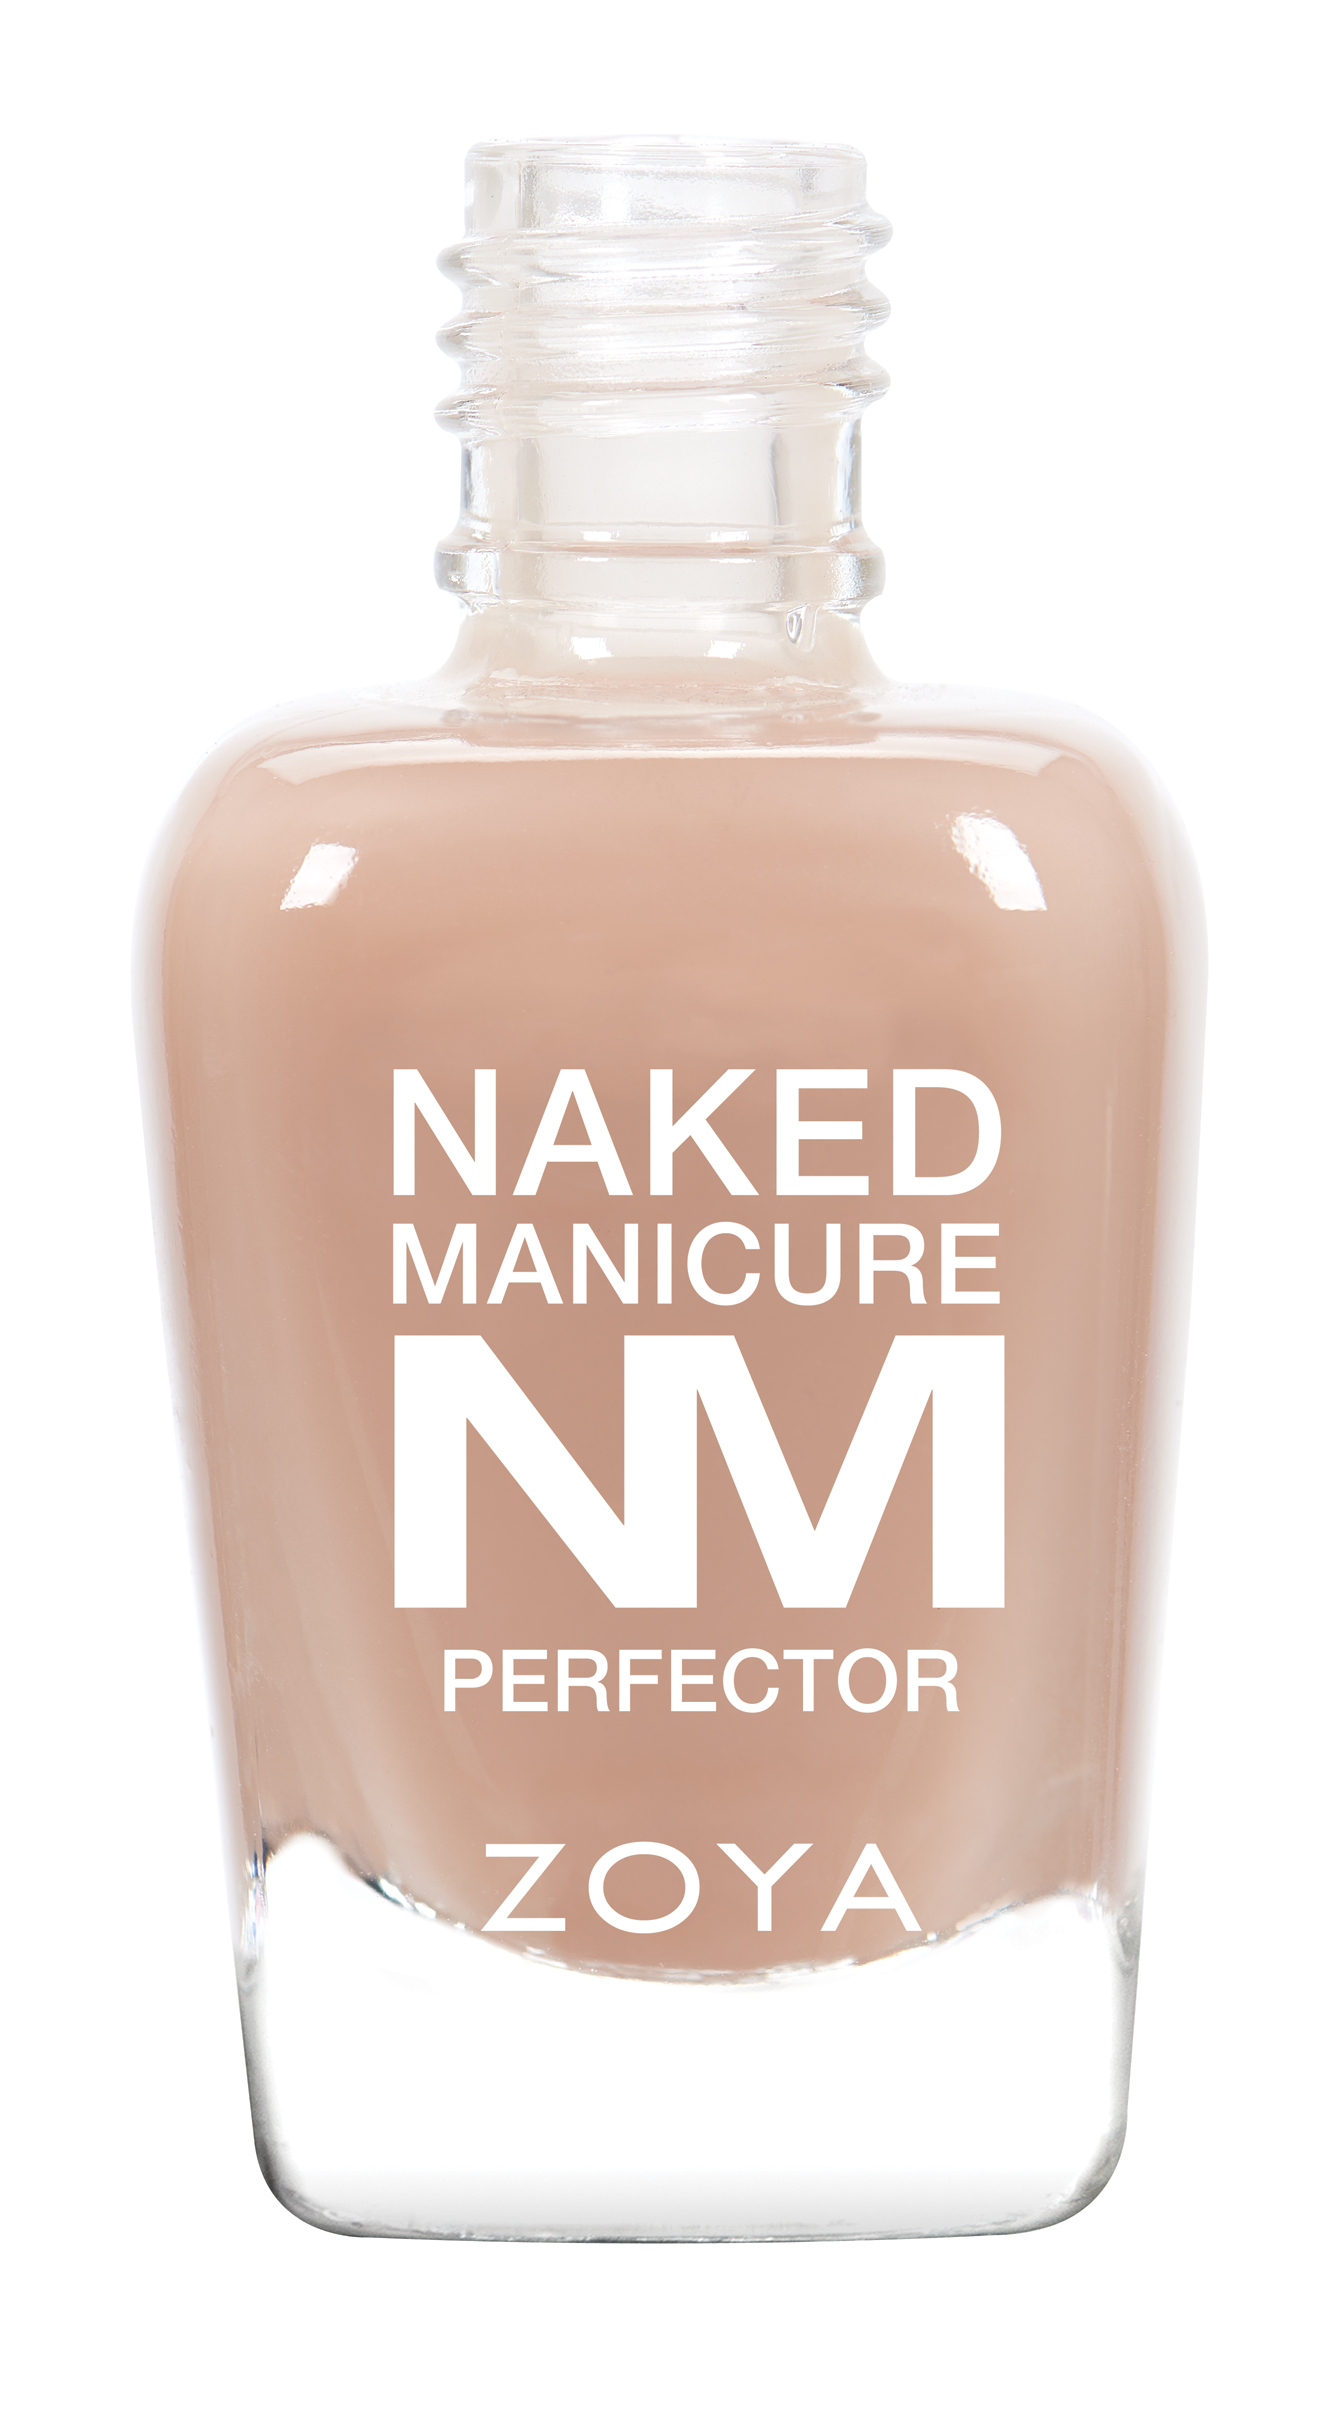 Zoya Naked Manicure Nude Perfector product-reel